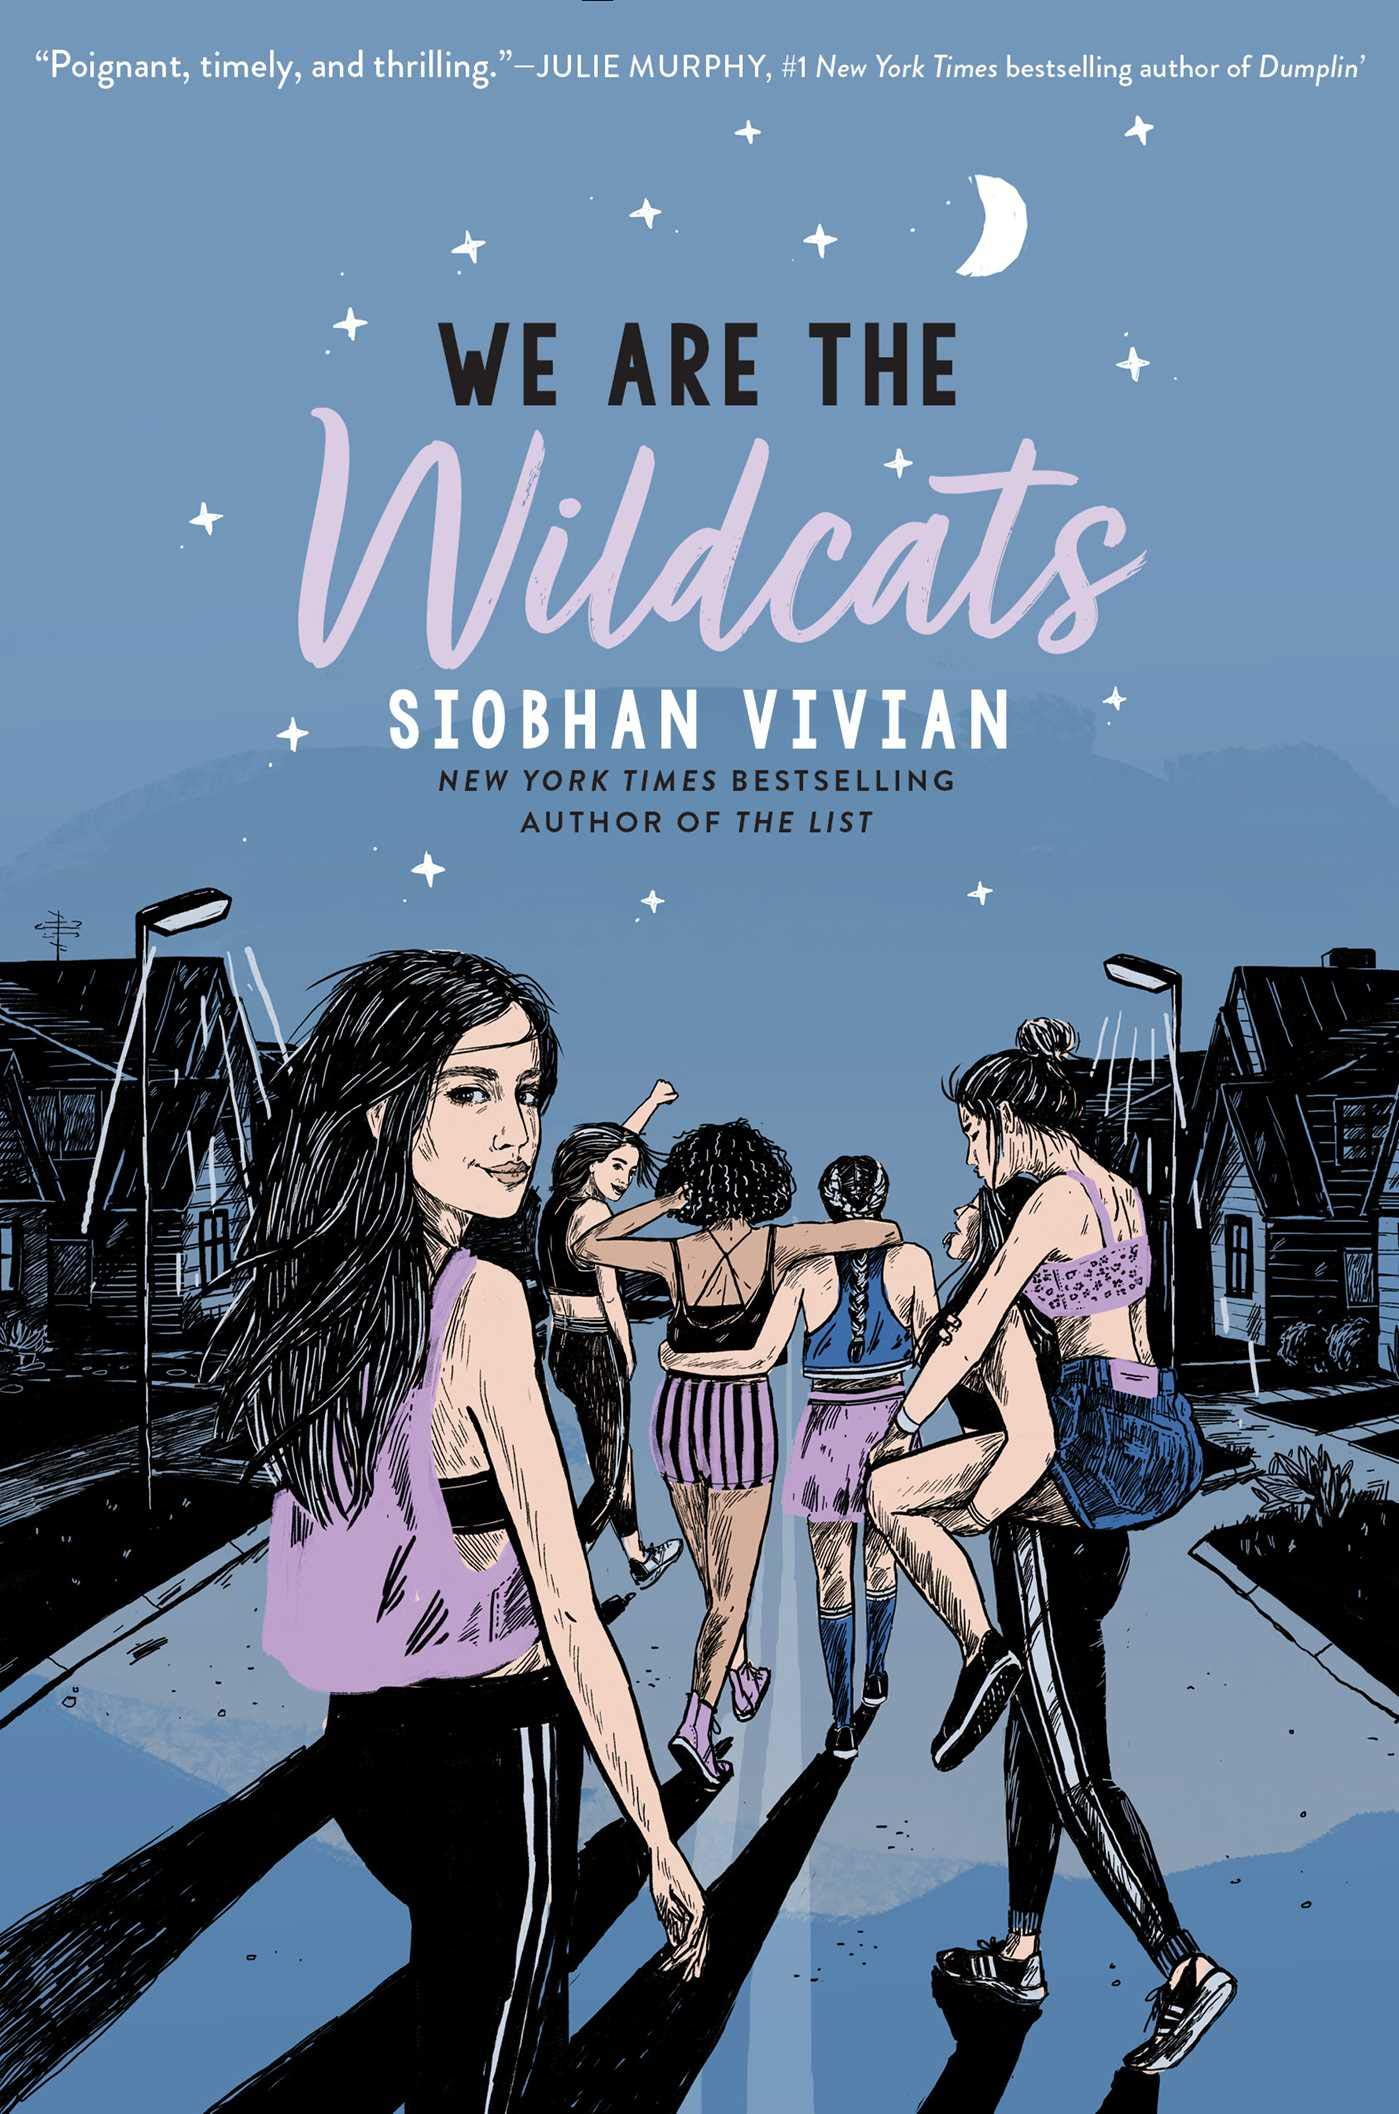 Amazon.com: We Are the Wildcats (9781534439900): Vivian, Siobhan ...